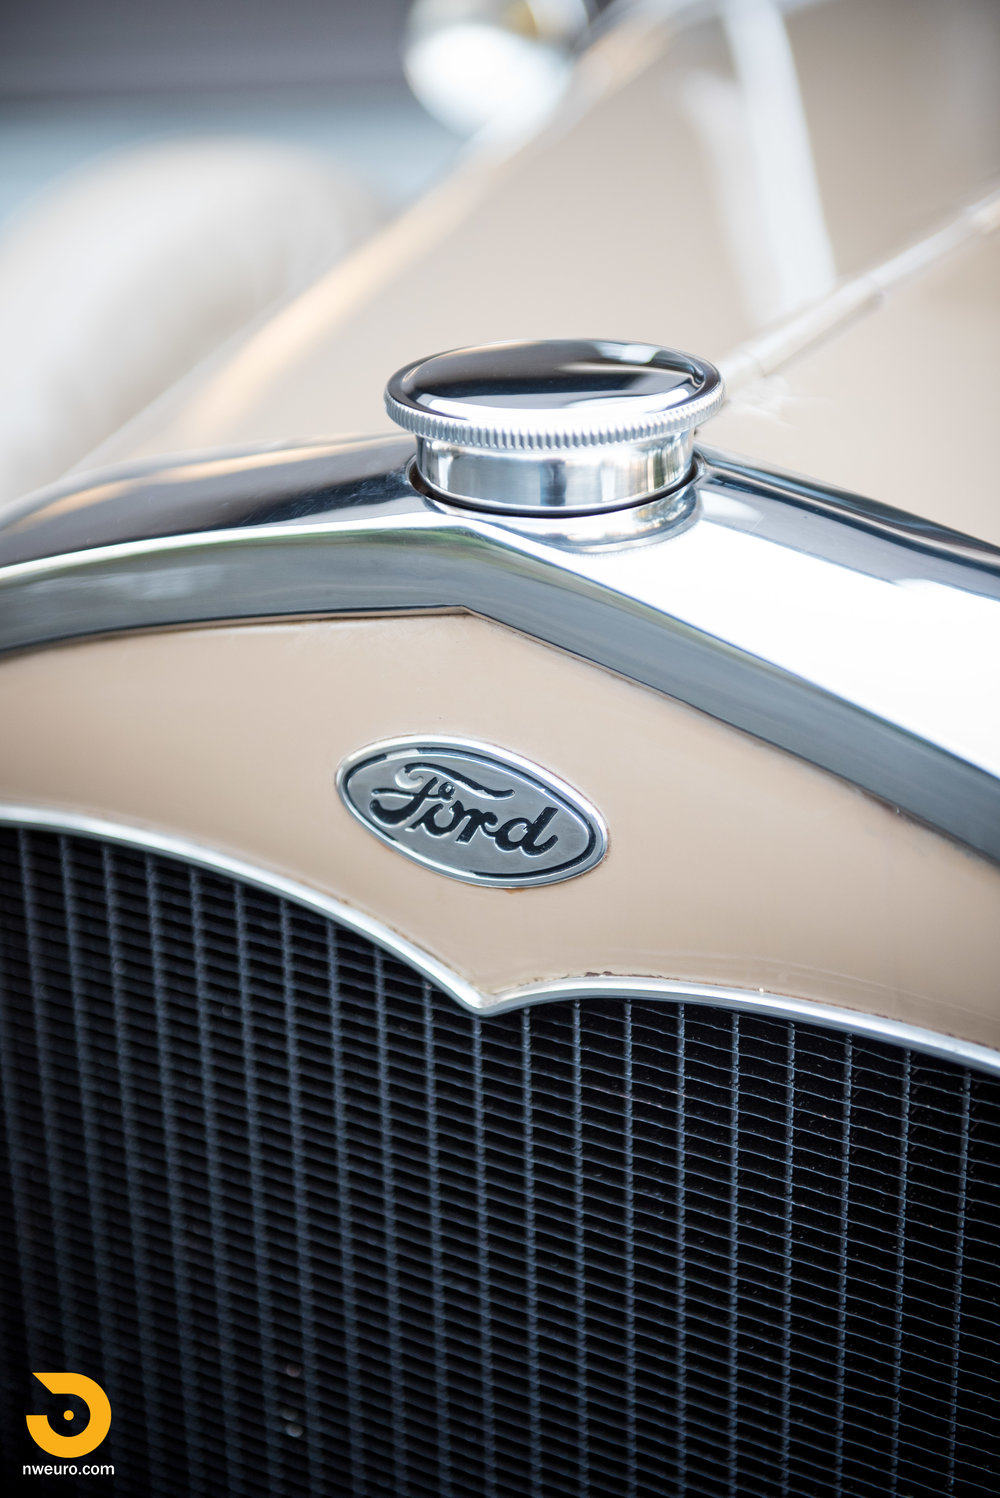 1931 Ford Model A Deluxe Roadster-12.jpg